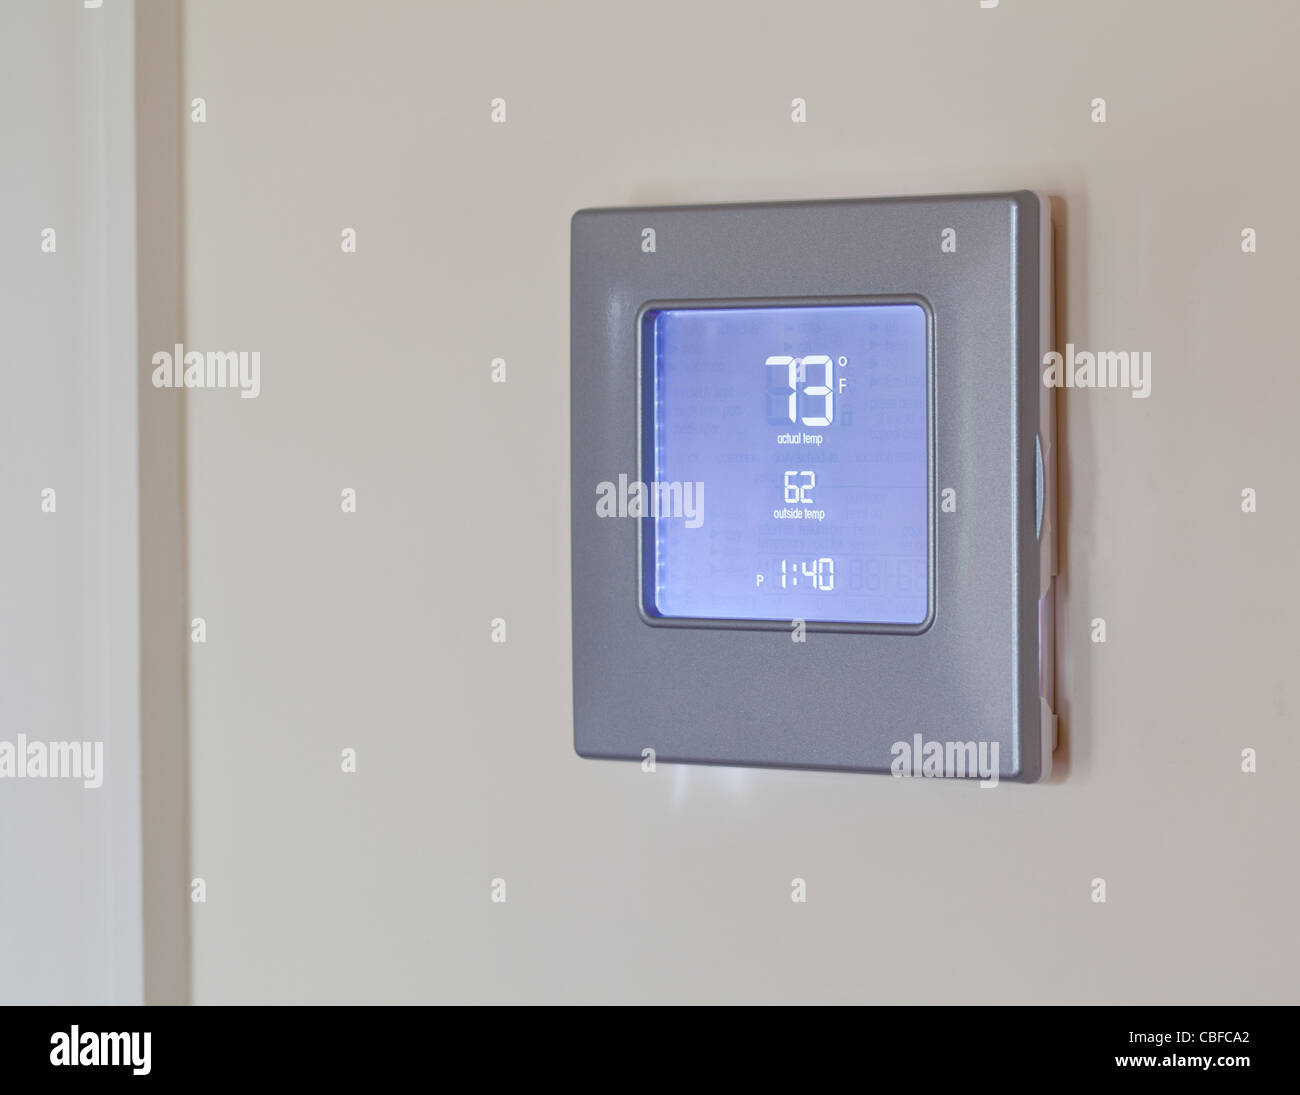 Electronic thermostat with blue LCD screen for controlling air conditioning and heating HVAC - Stock Image